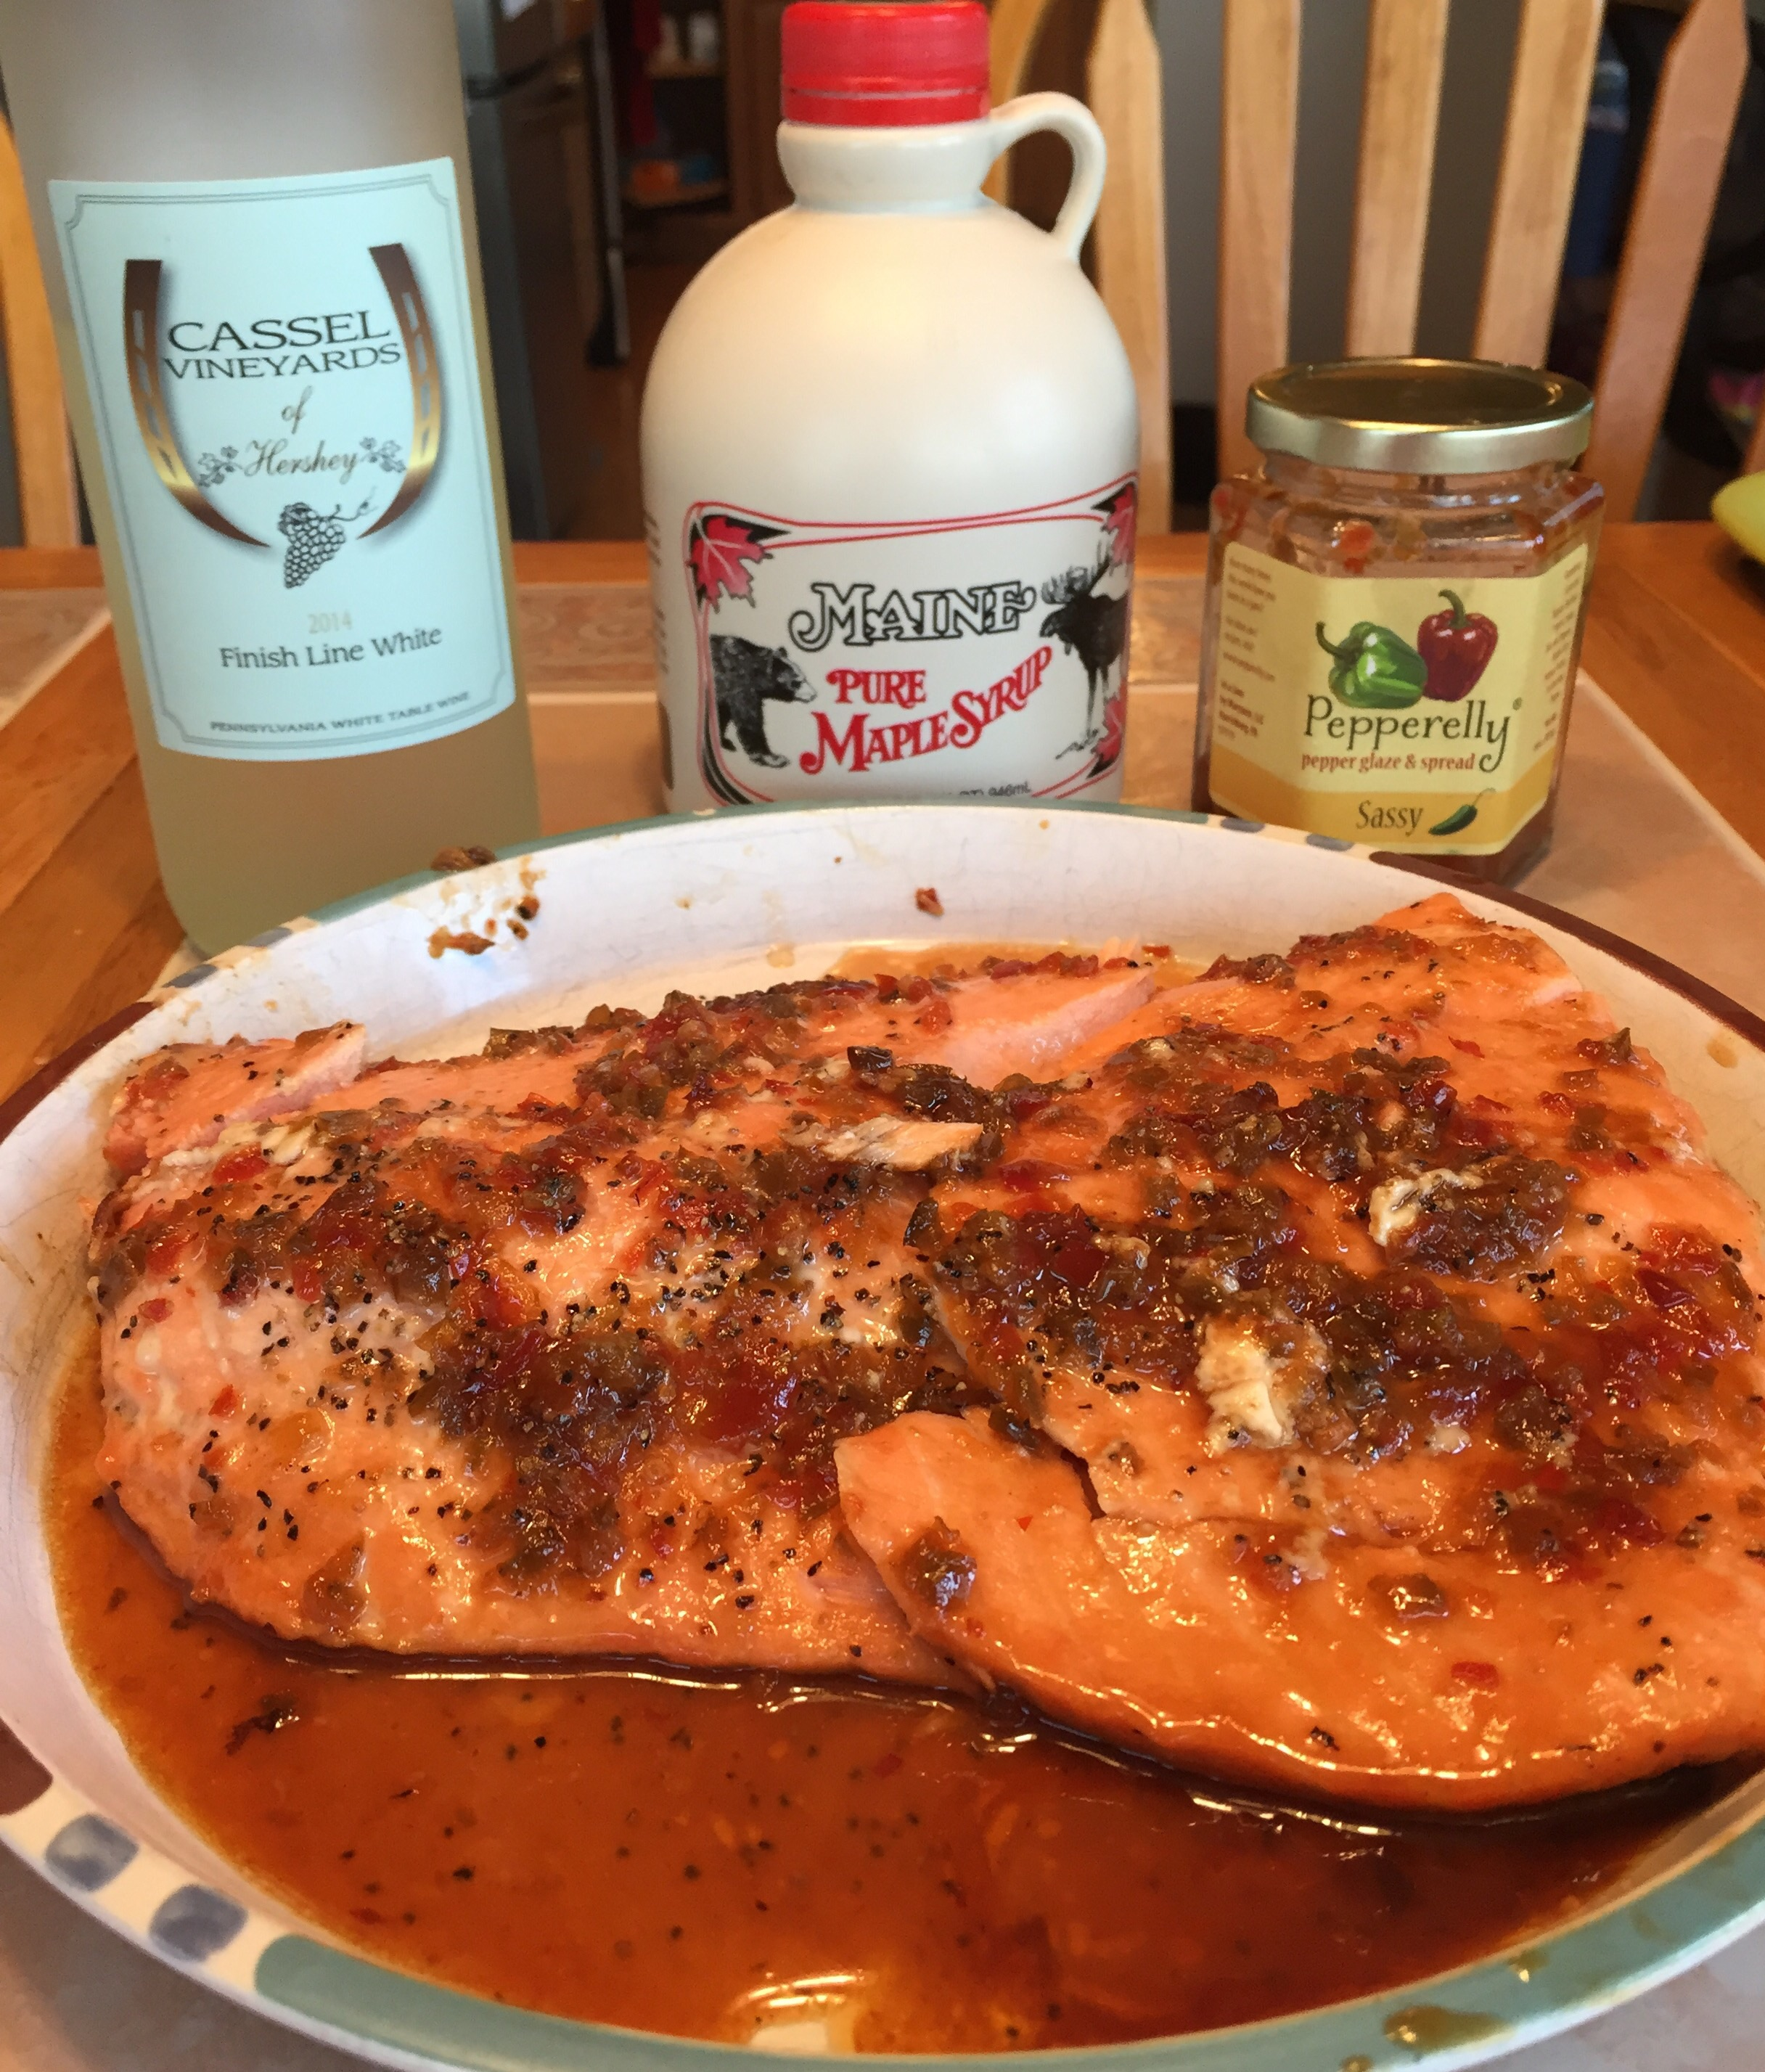 Salmon grilled with Cassel Vineyards Finish Line White, Maine Maple Syrup and Pepperely Glaze